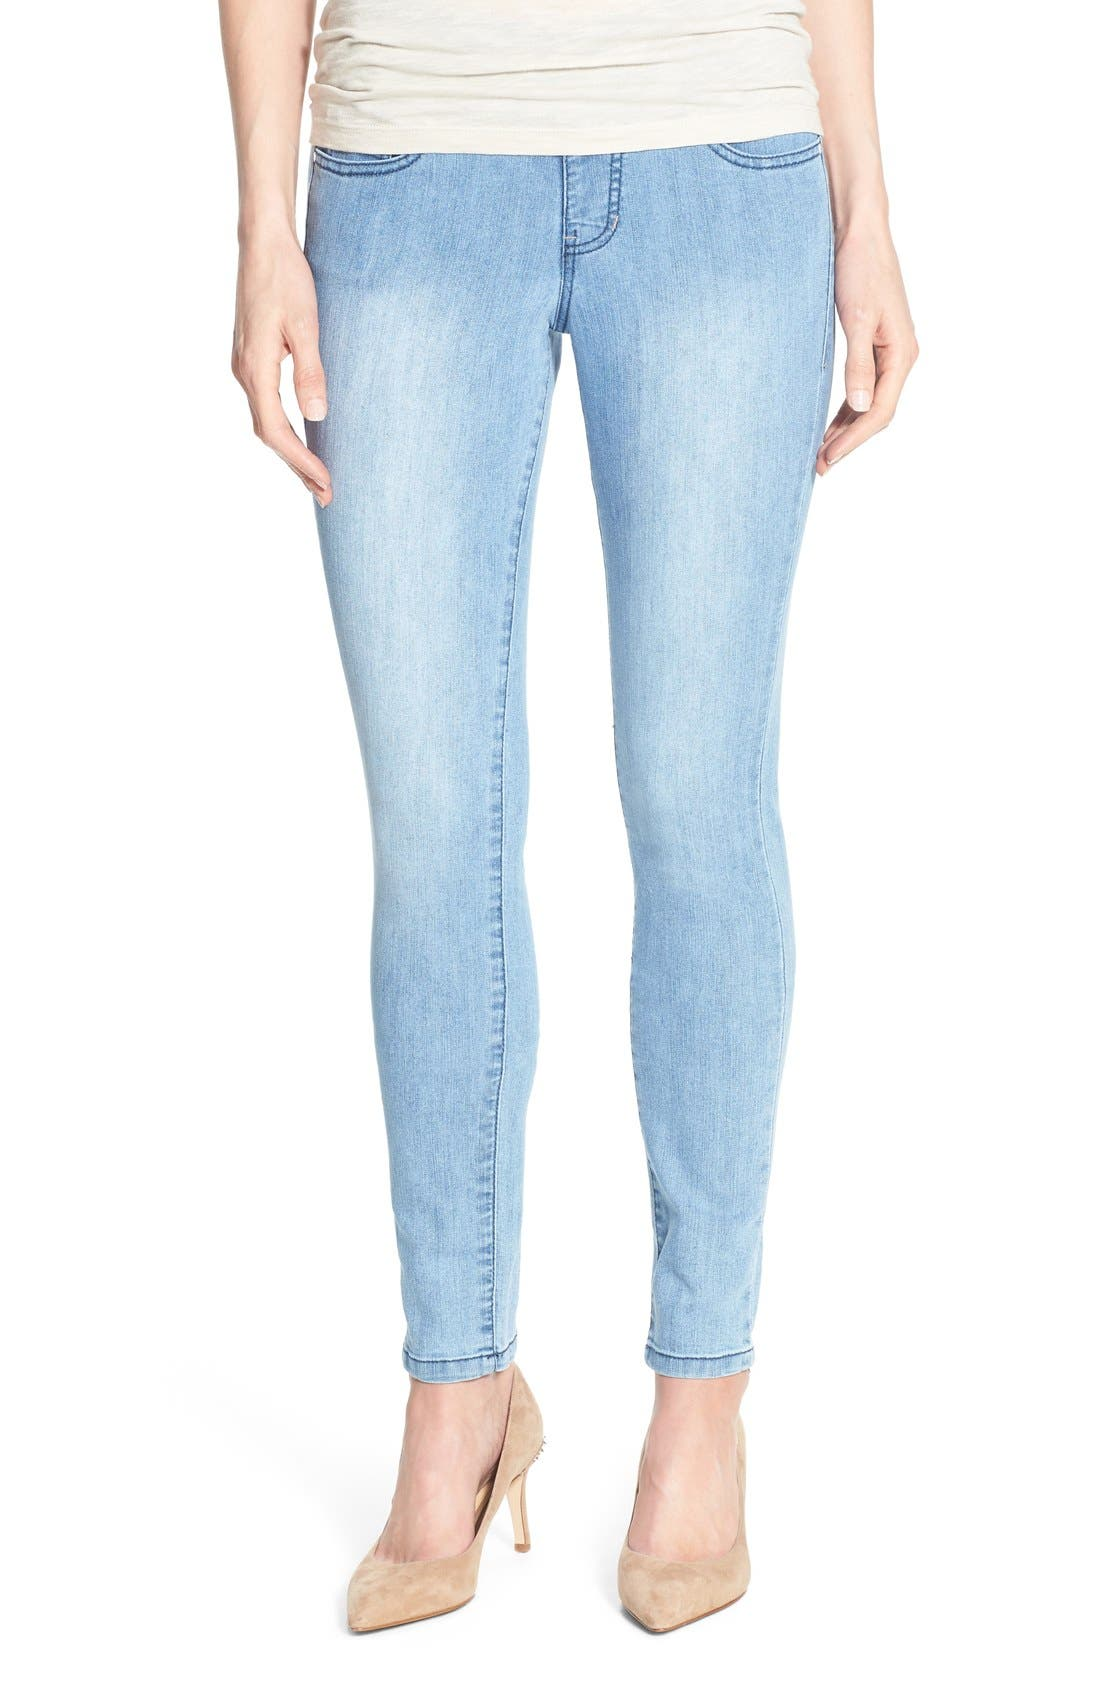 Main Image - Jag Jeans 'Nora' Pull-On Stretch Skinny Jeans (Southern Sky)